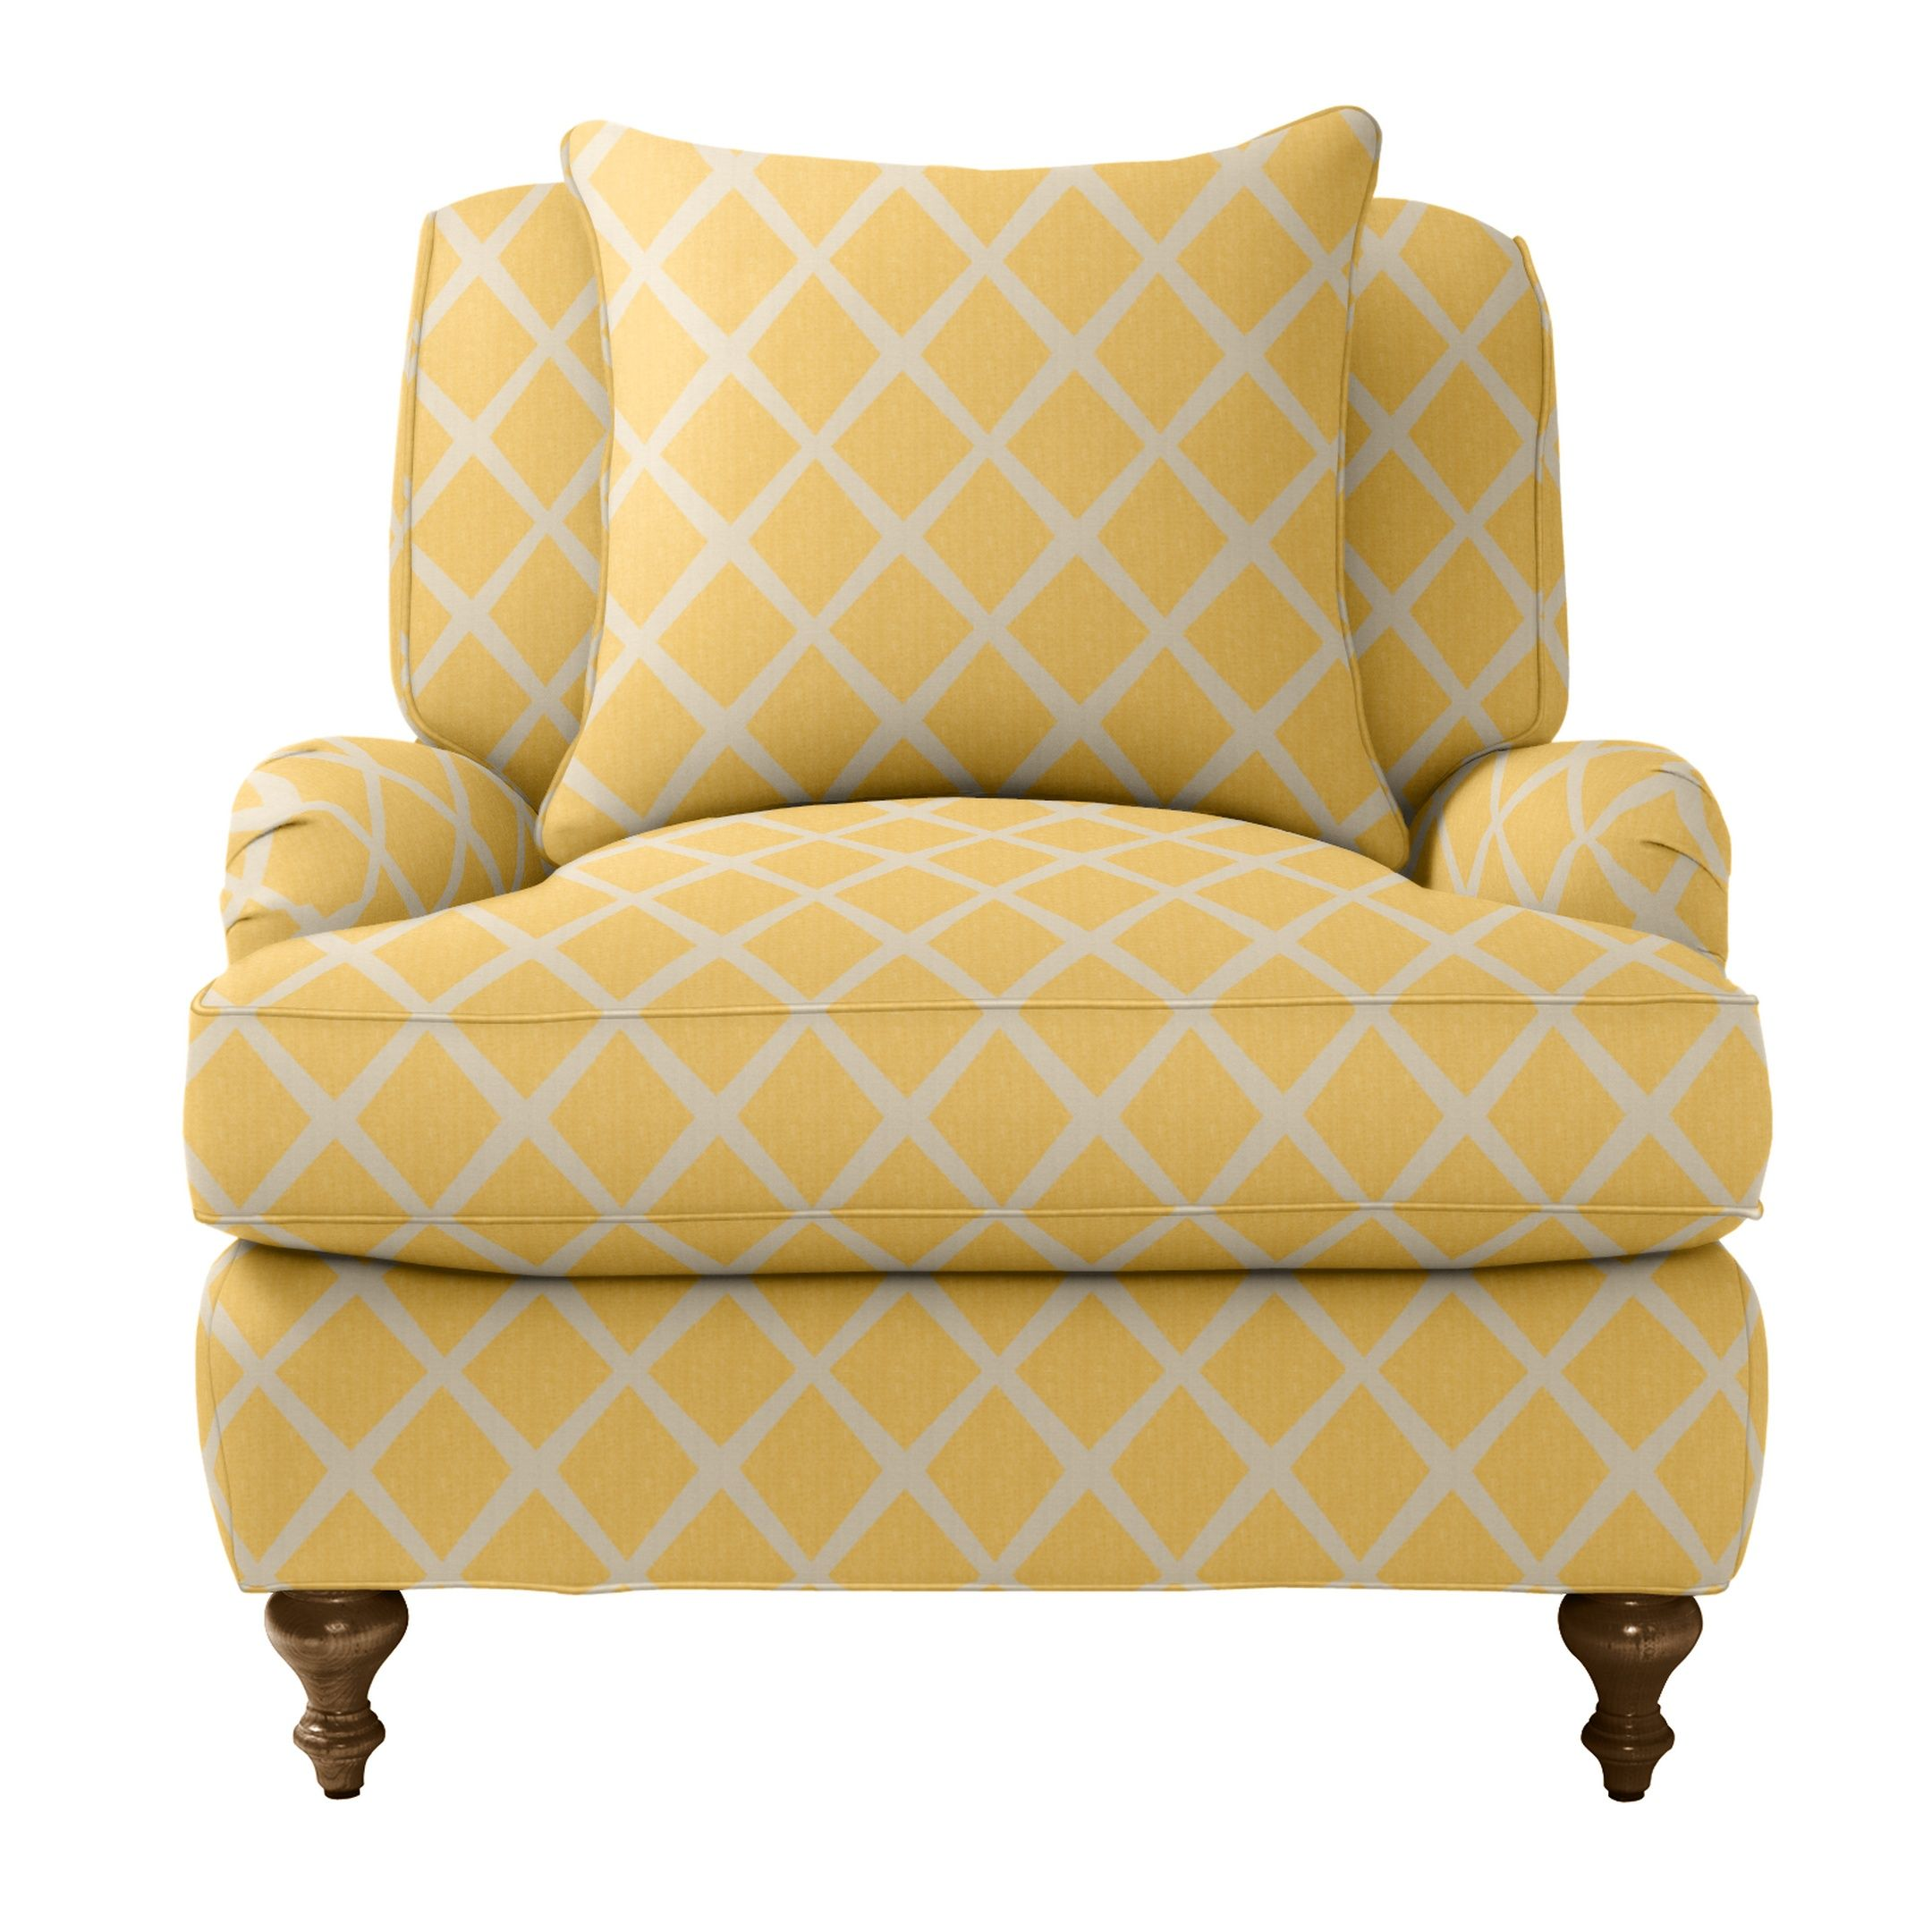 Overstuffed Chair Overstuffed Chair This Would Go Nicely With My Books